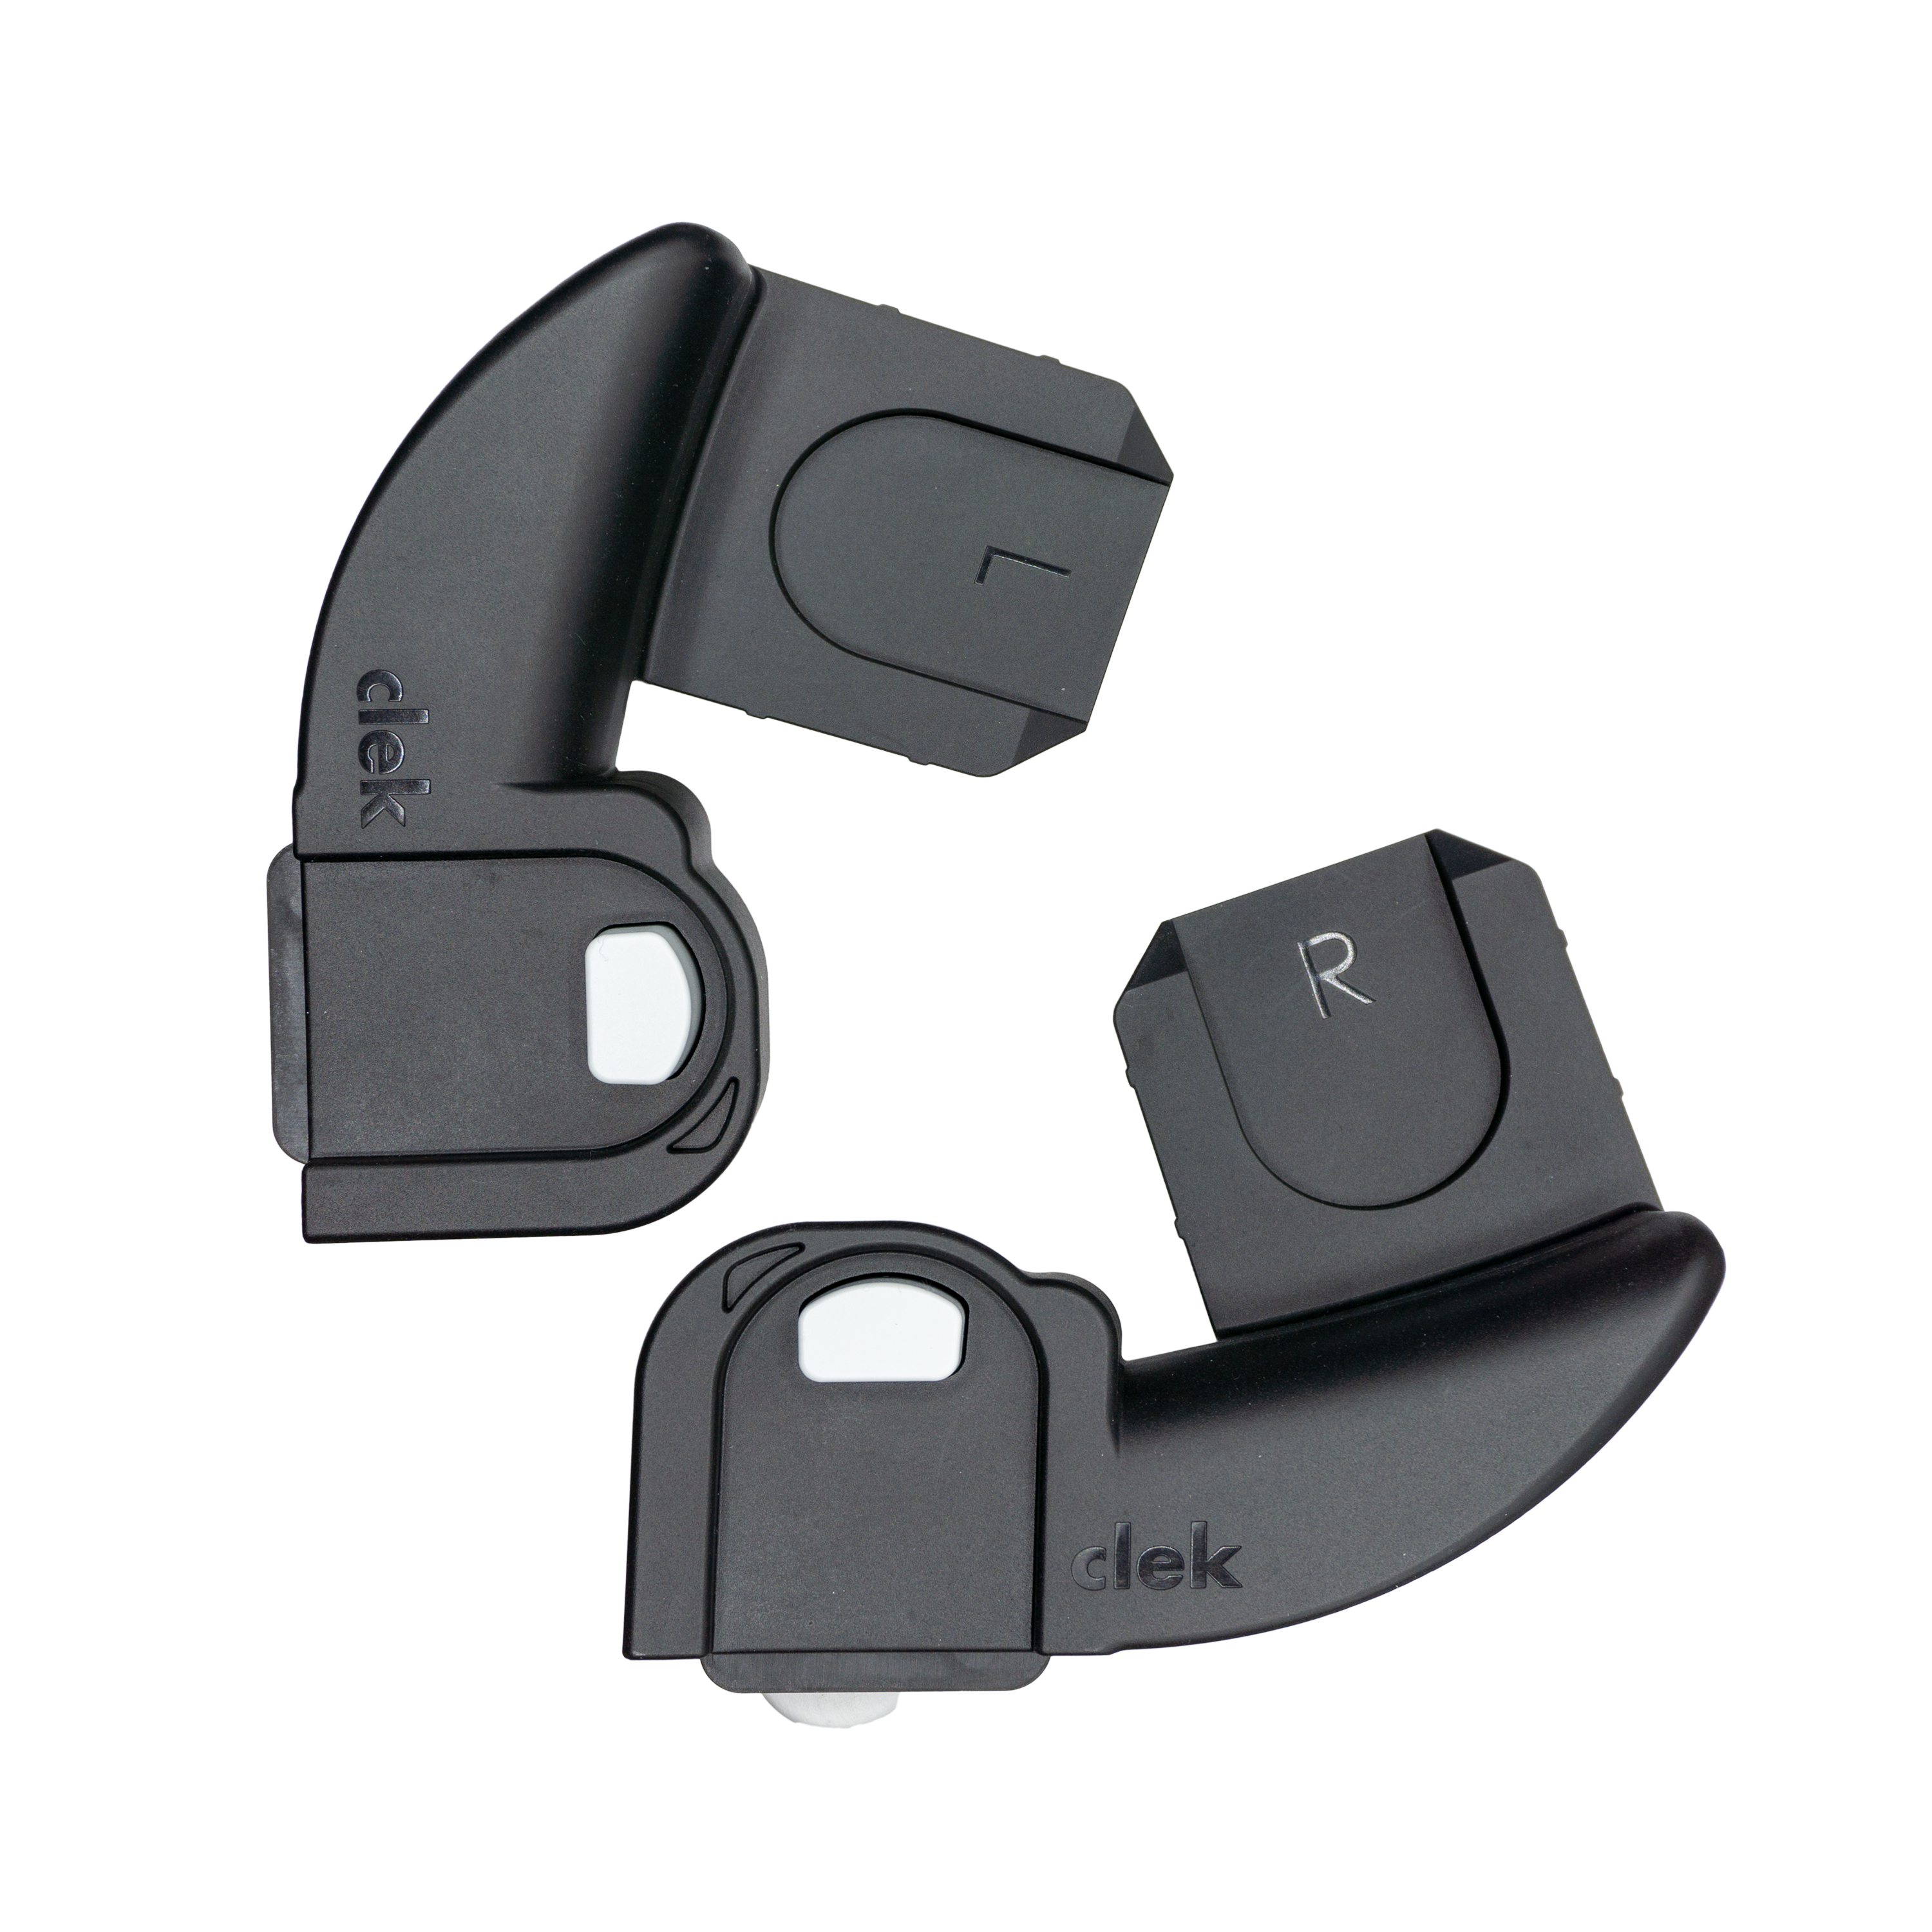 Clek Car Seat Adapter for UPPAbaby* Default Title